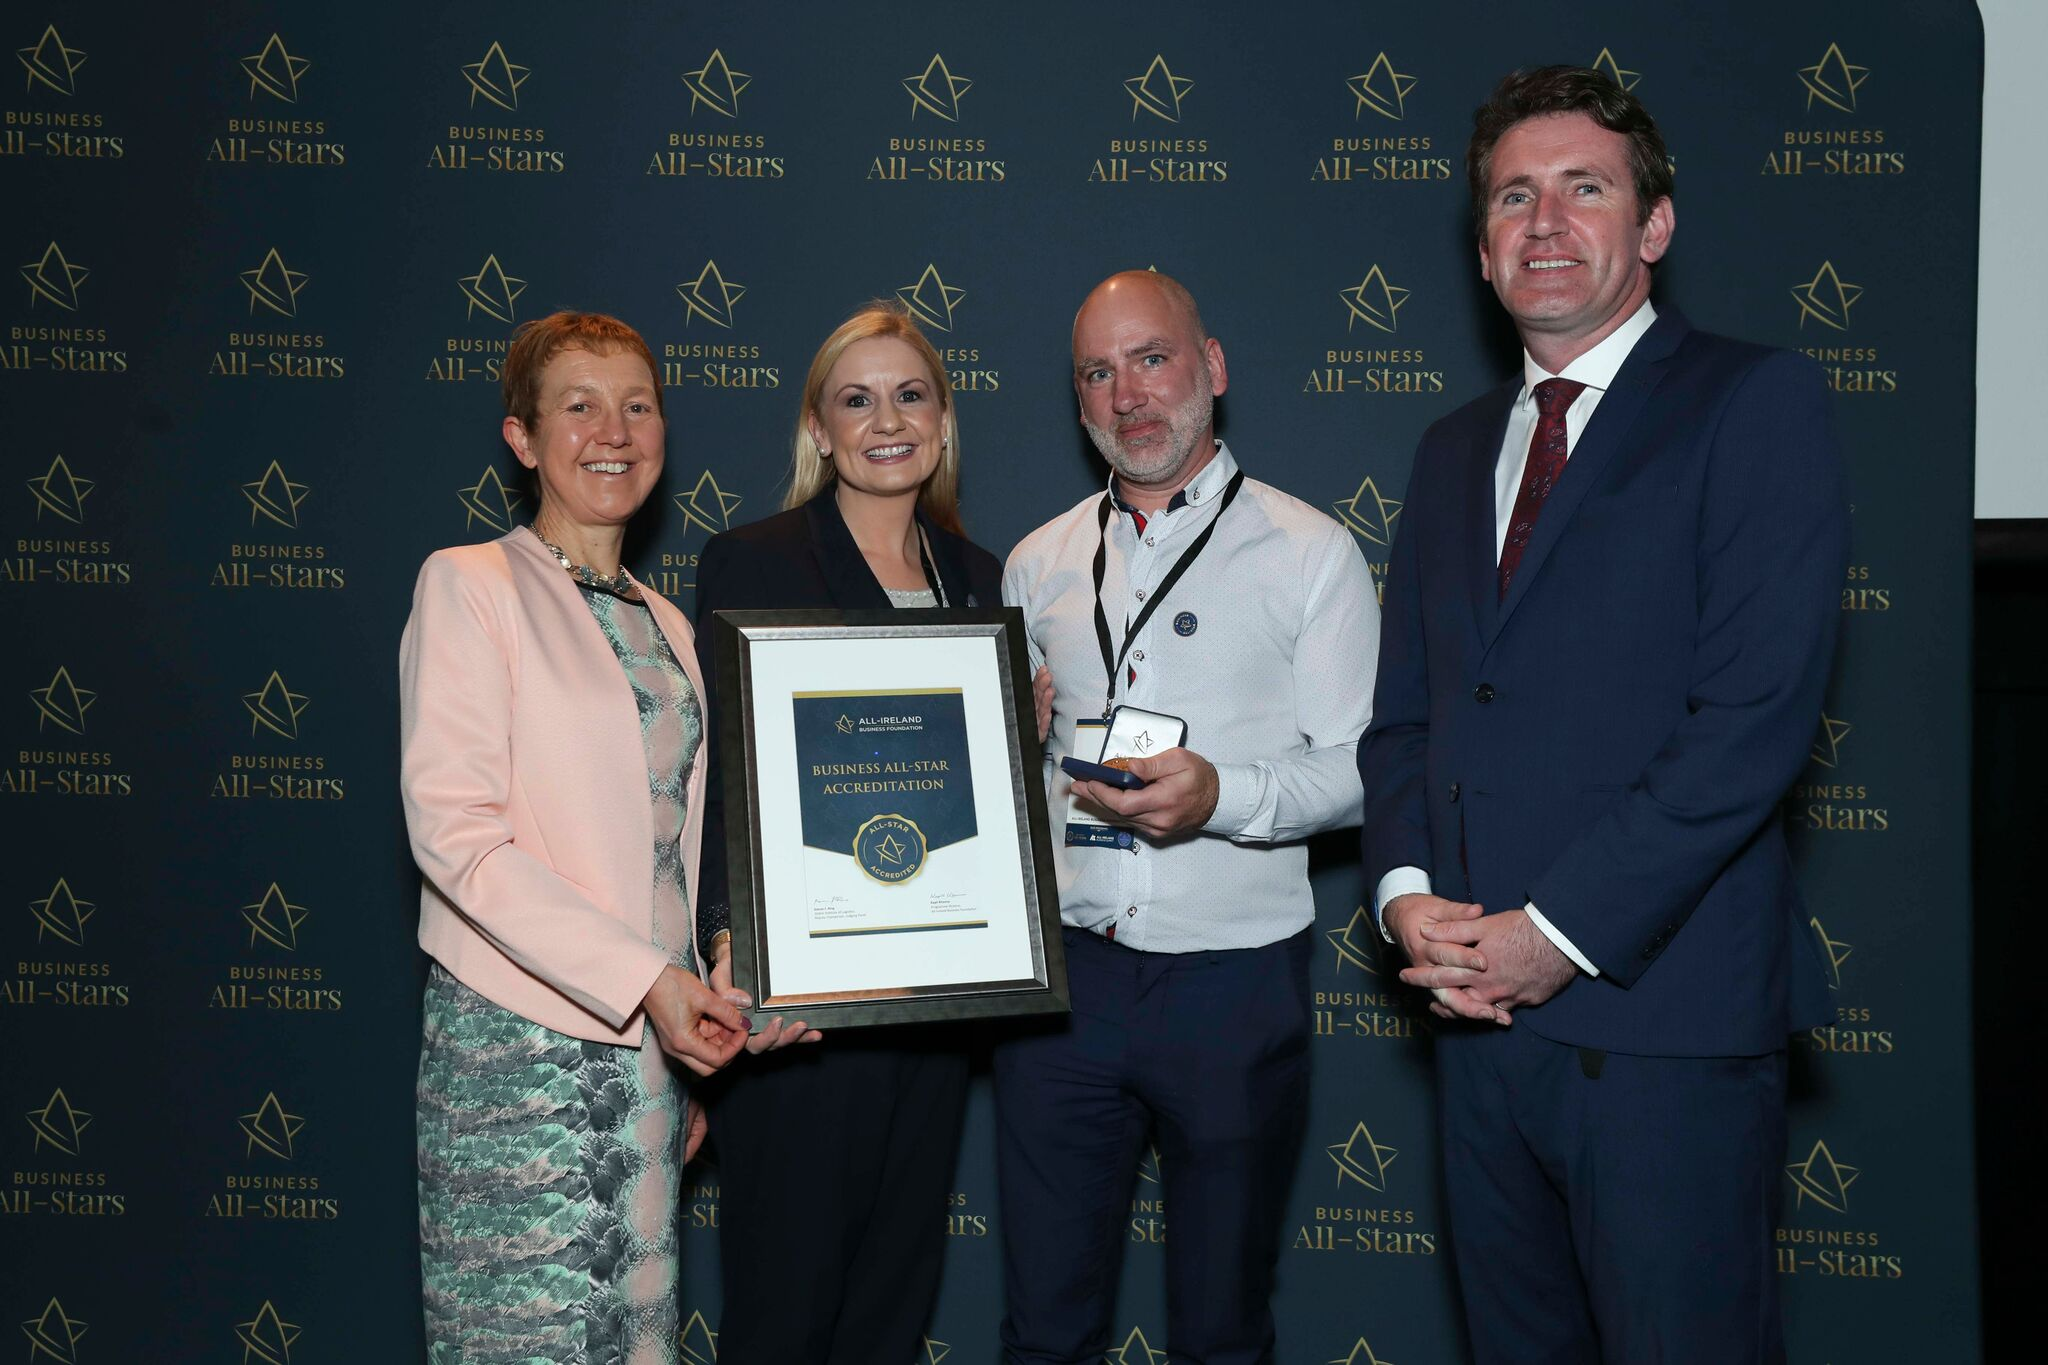 Orla Cunnigham & Ronan O Grady - All In Design & Print receiving Business All-Star Accreditation at Croke Park from Dr Briga Hynes, Kemmy Business School, University of Limerick and Senator Aodhán Ó Ríordáin, Spokesperson on Education and Skills, Gaeilge and the Gaeltacht.